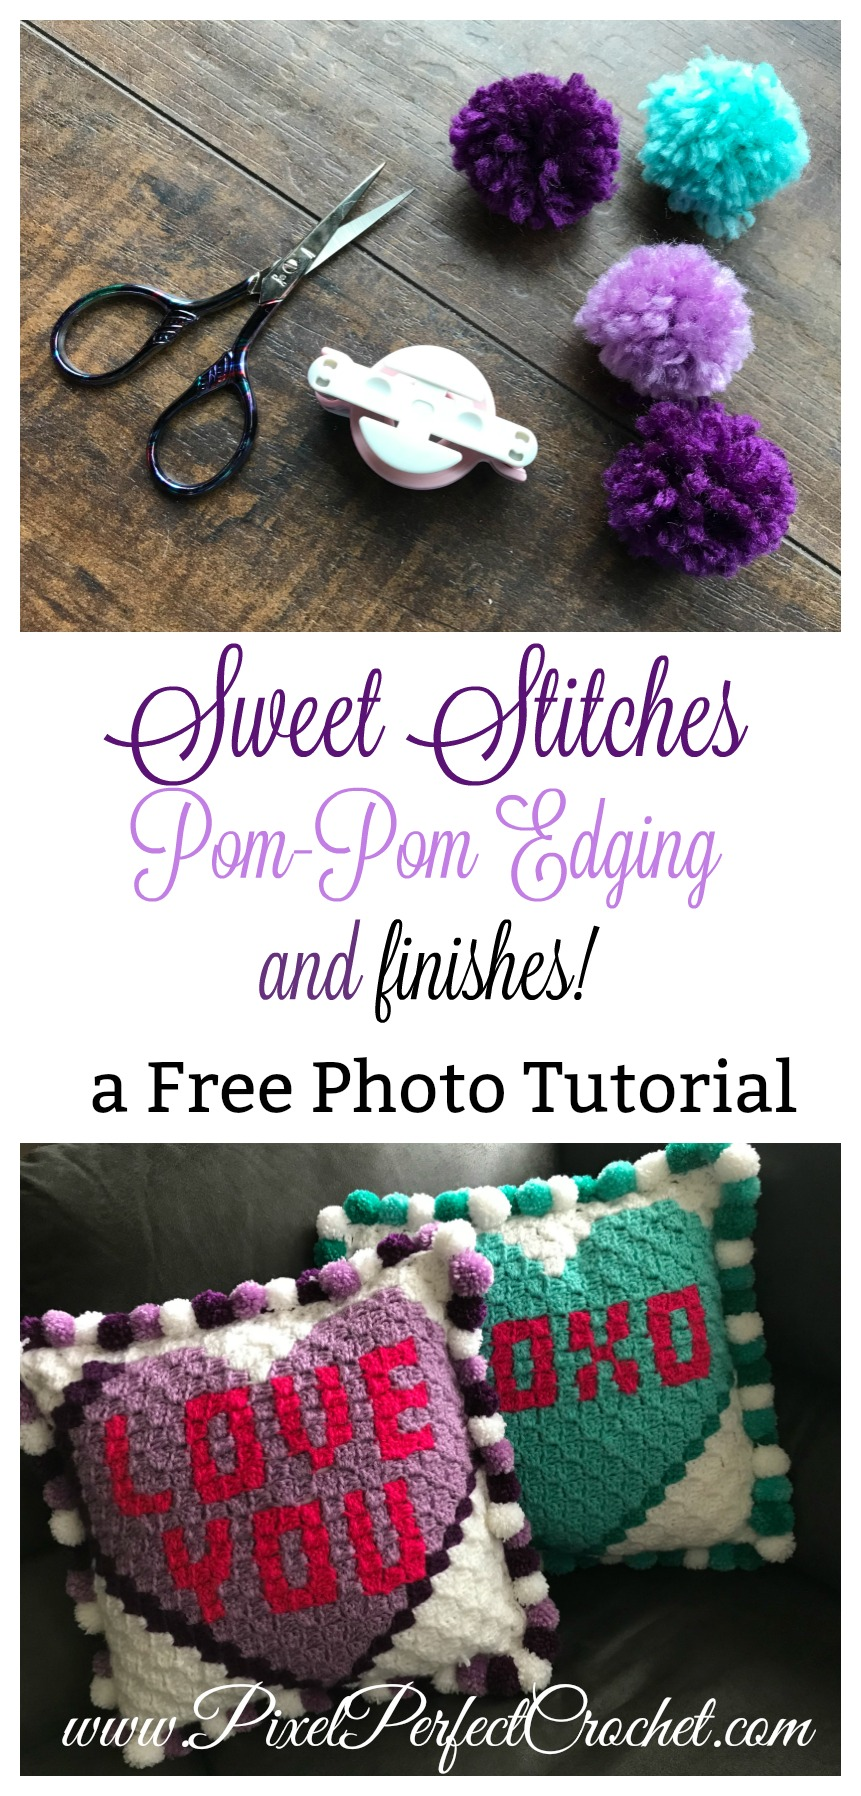 Sweet Stitches Pom Pom Edging And Finishes Pixel Perfect Crochet